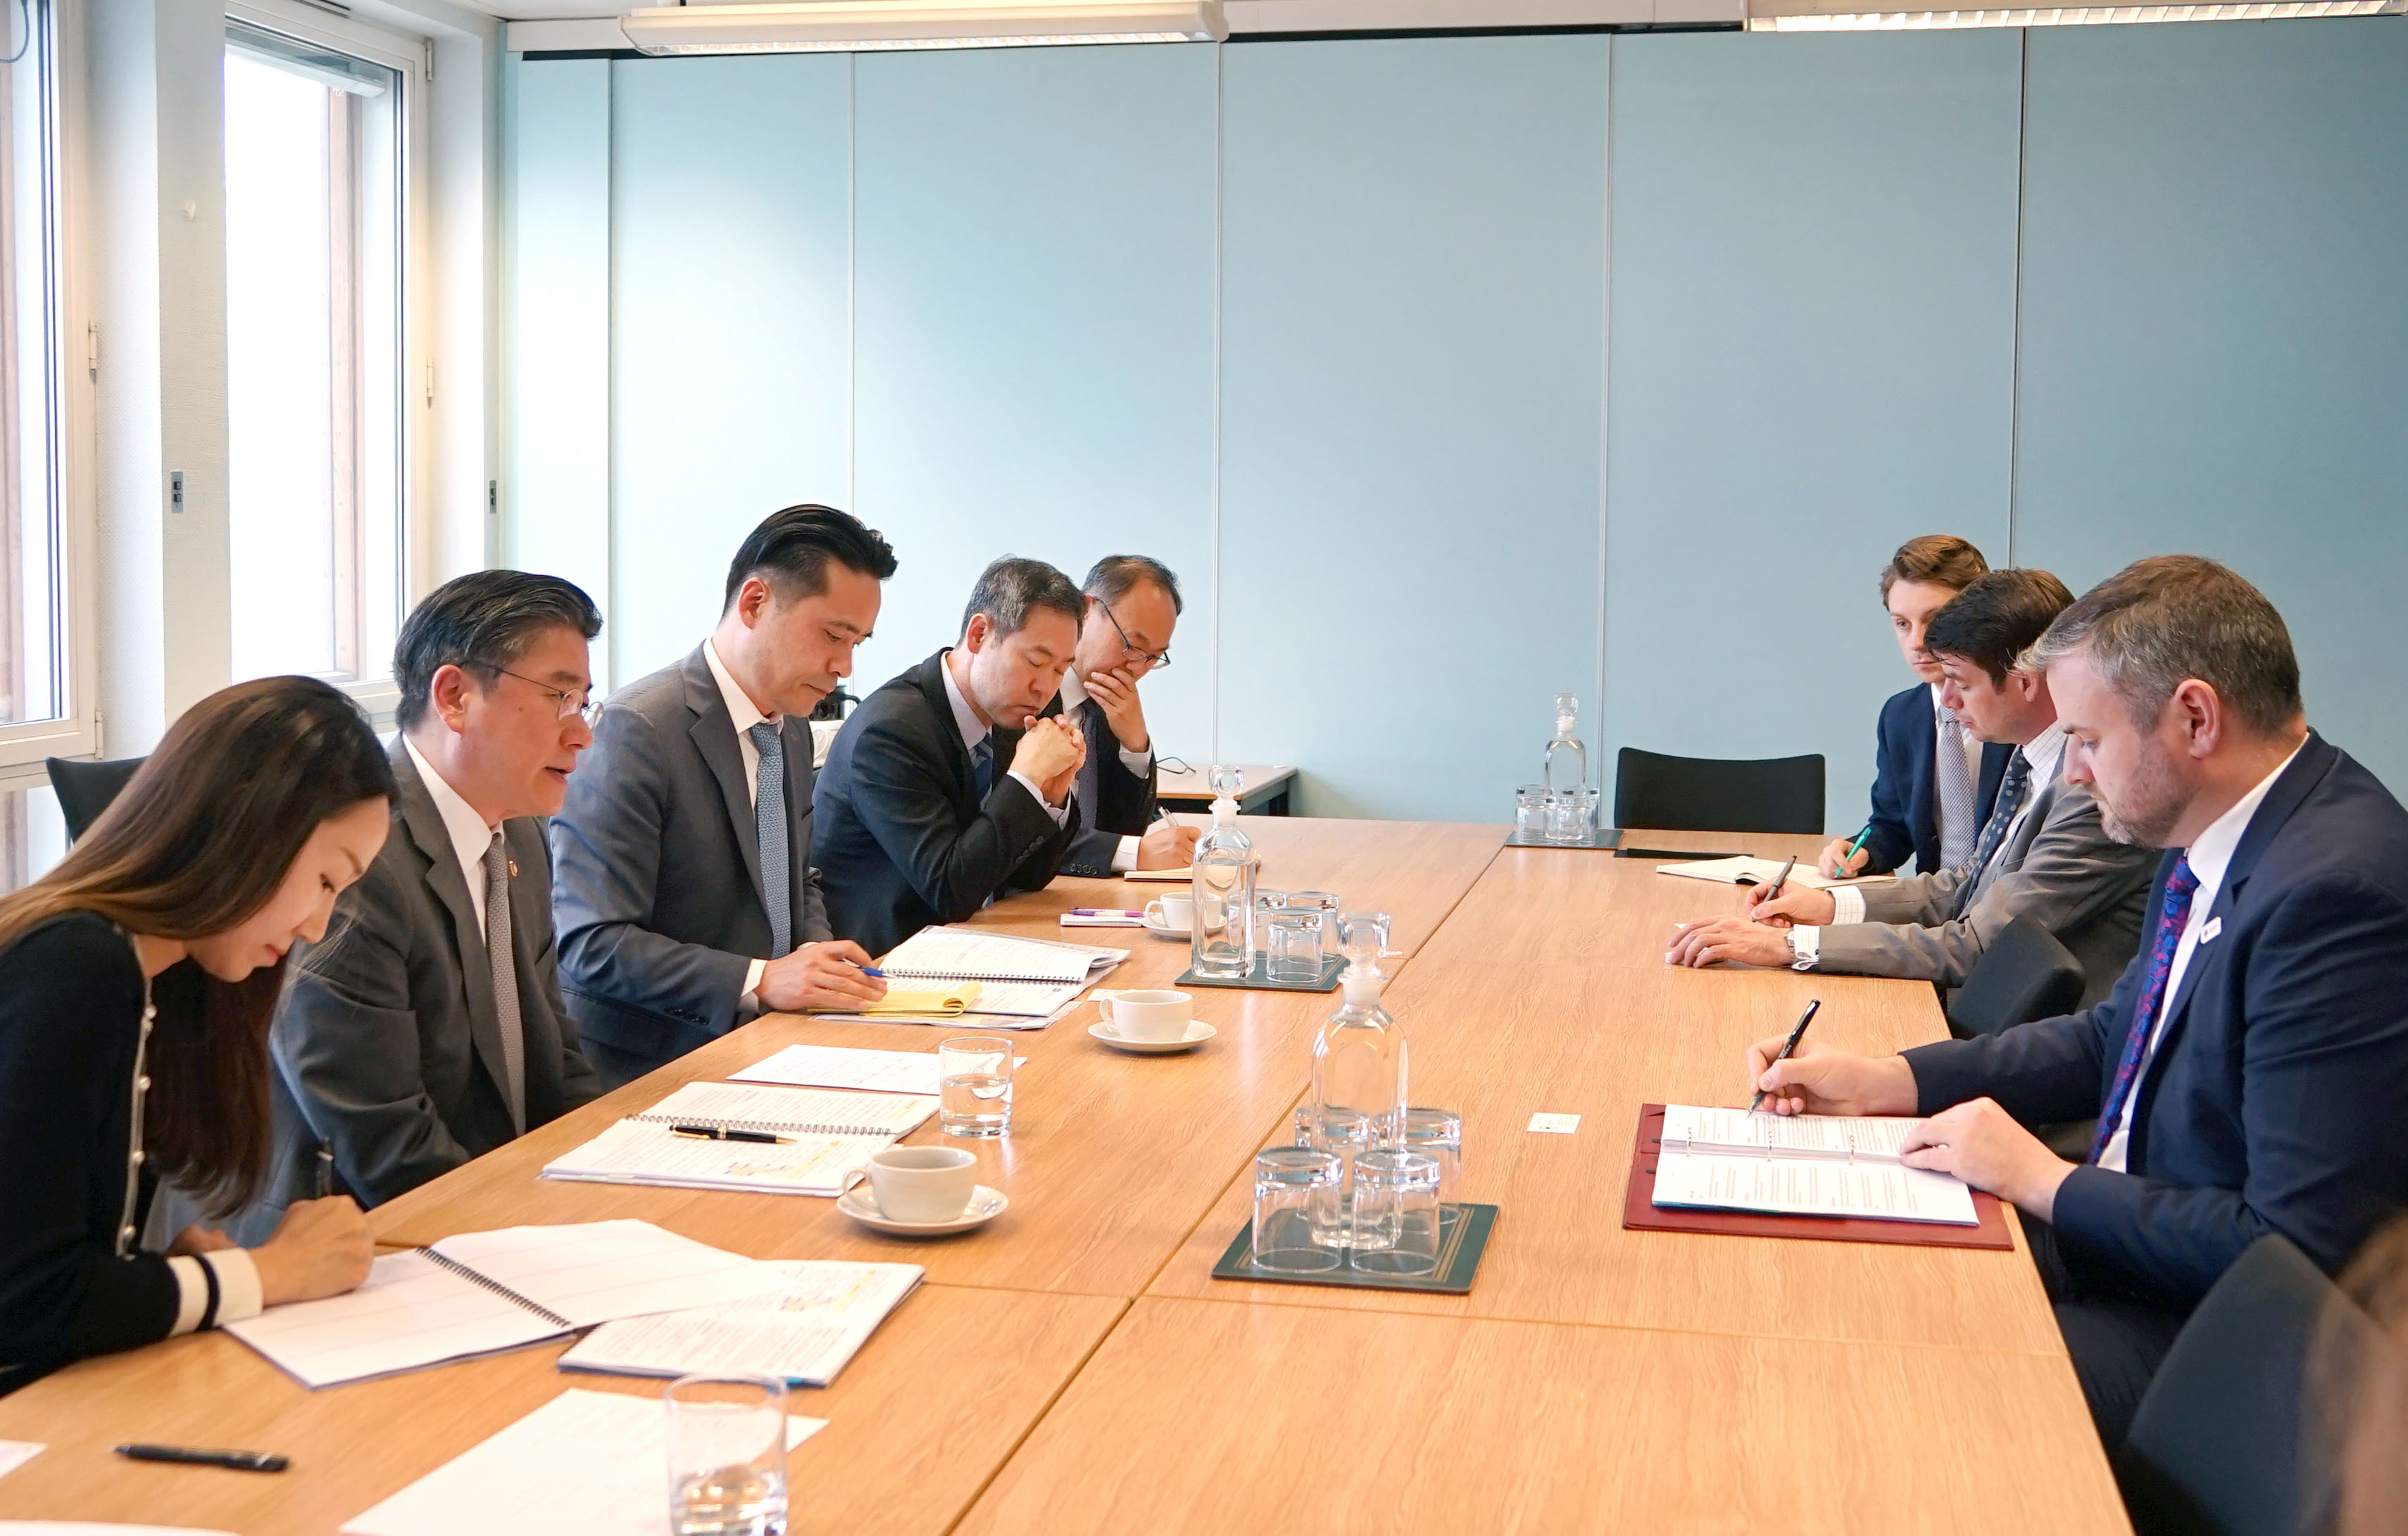 Vice Minister Cheong discusses industrial ties with his UK counterparts in London